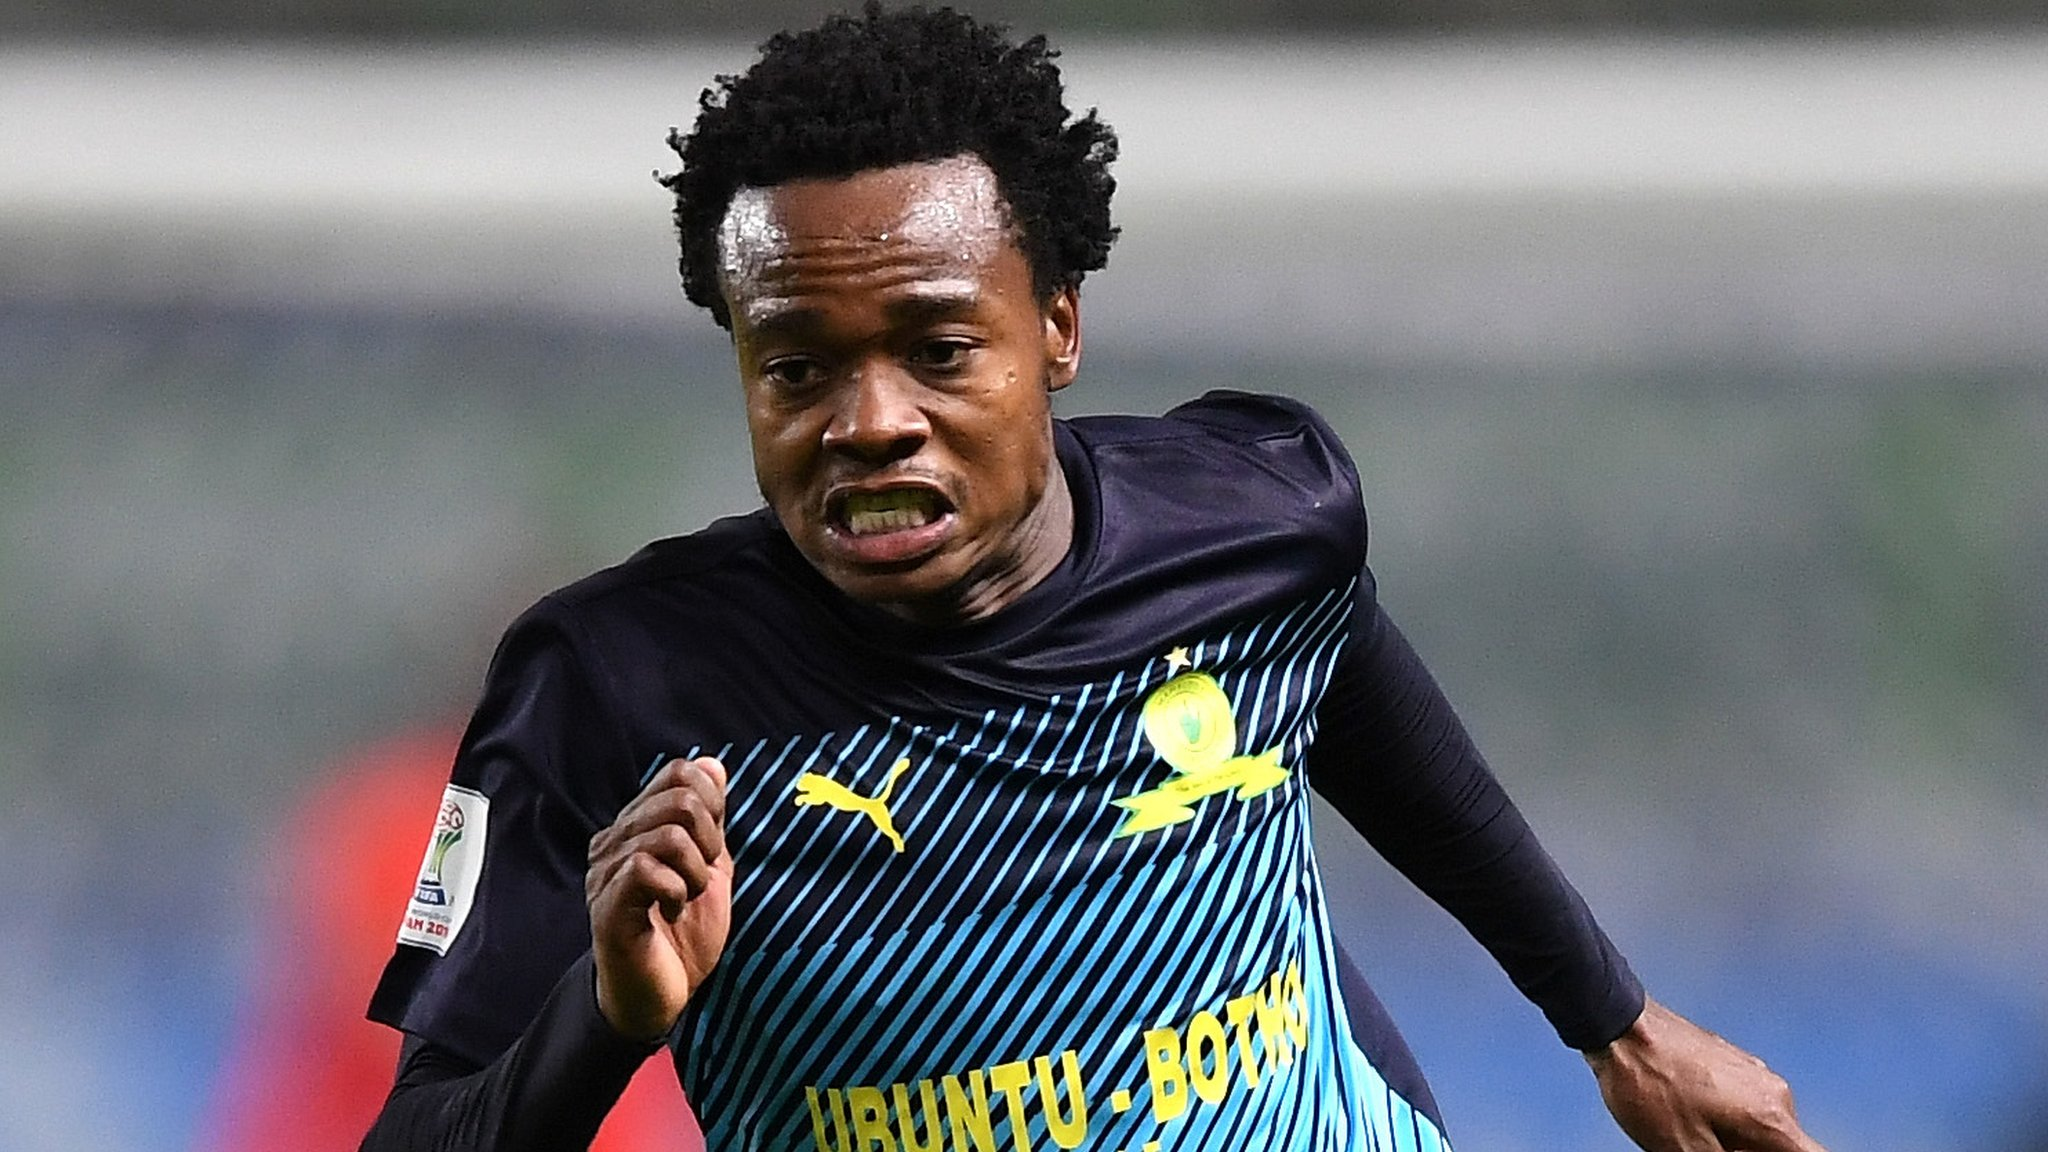 'A player for the future' - Brighton sign South Africa striker Tau